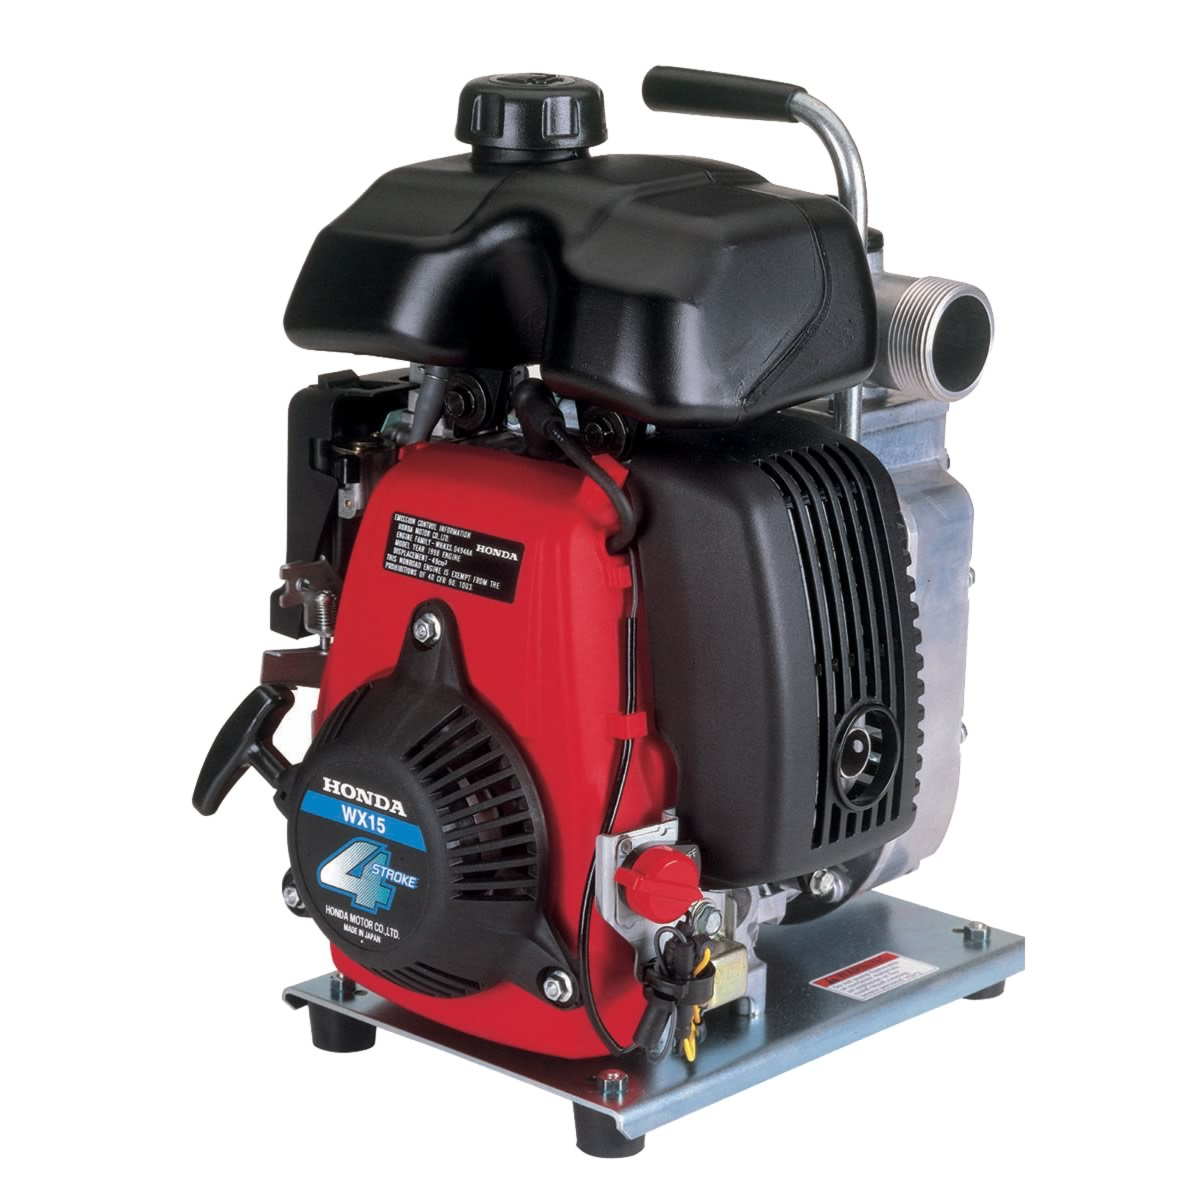 h powered with watt powerstroke engine the honda generators depot start gasoline small engines portable p home generator electric